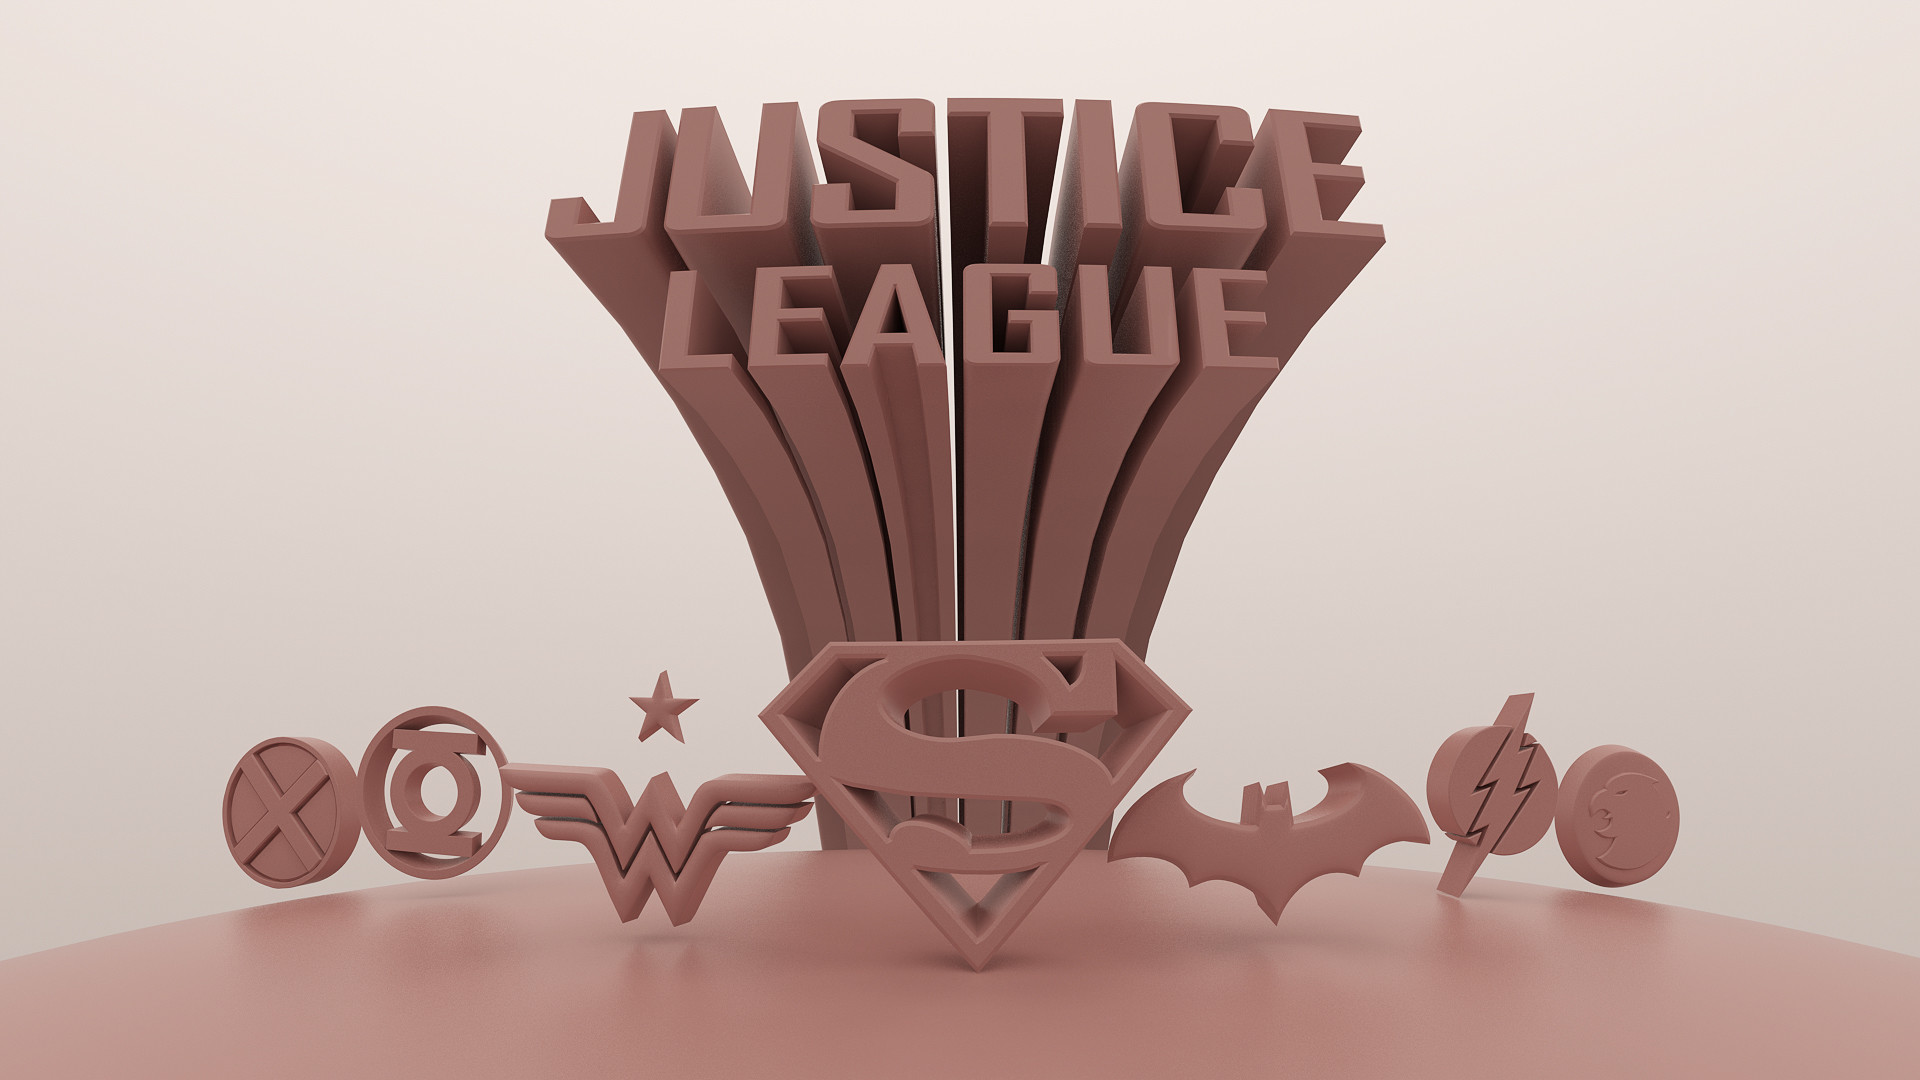 Justice League Title in 3D Clay